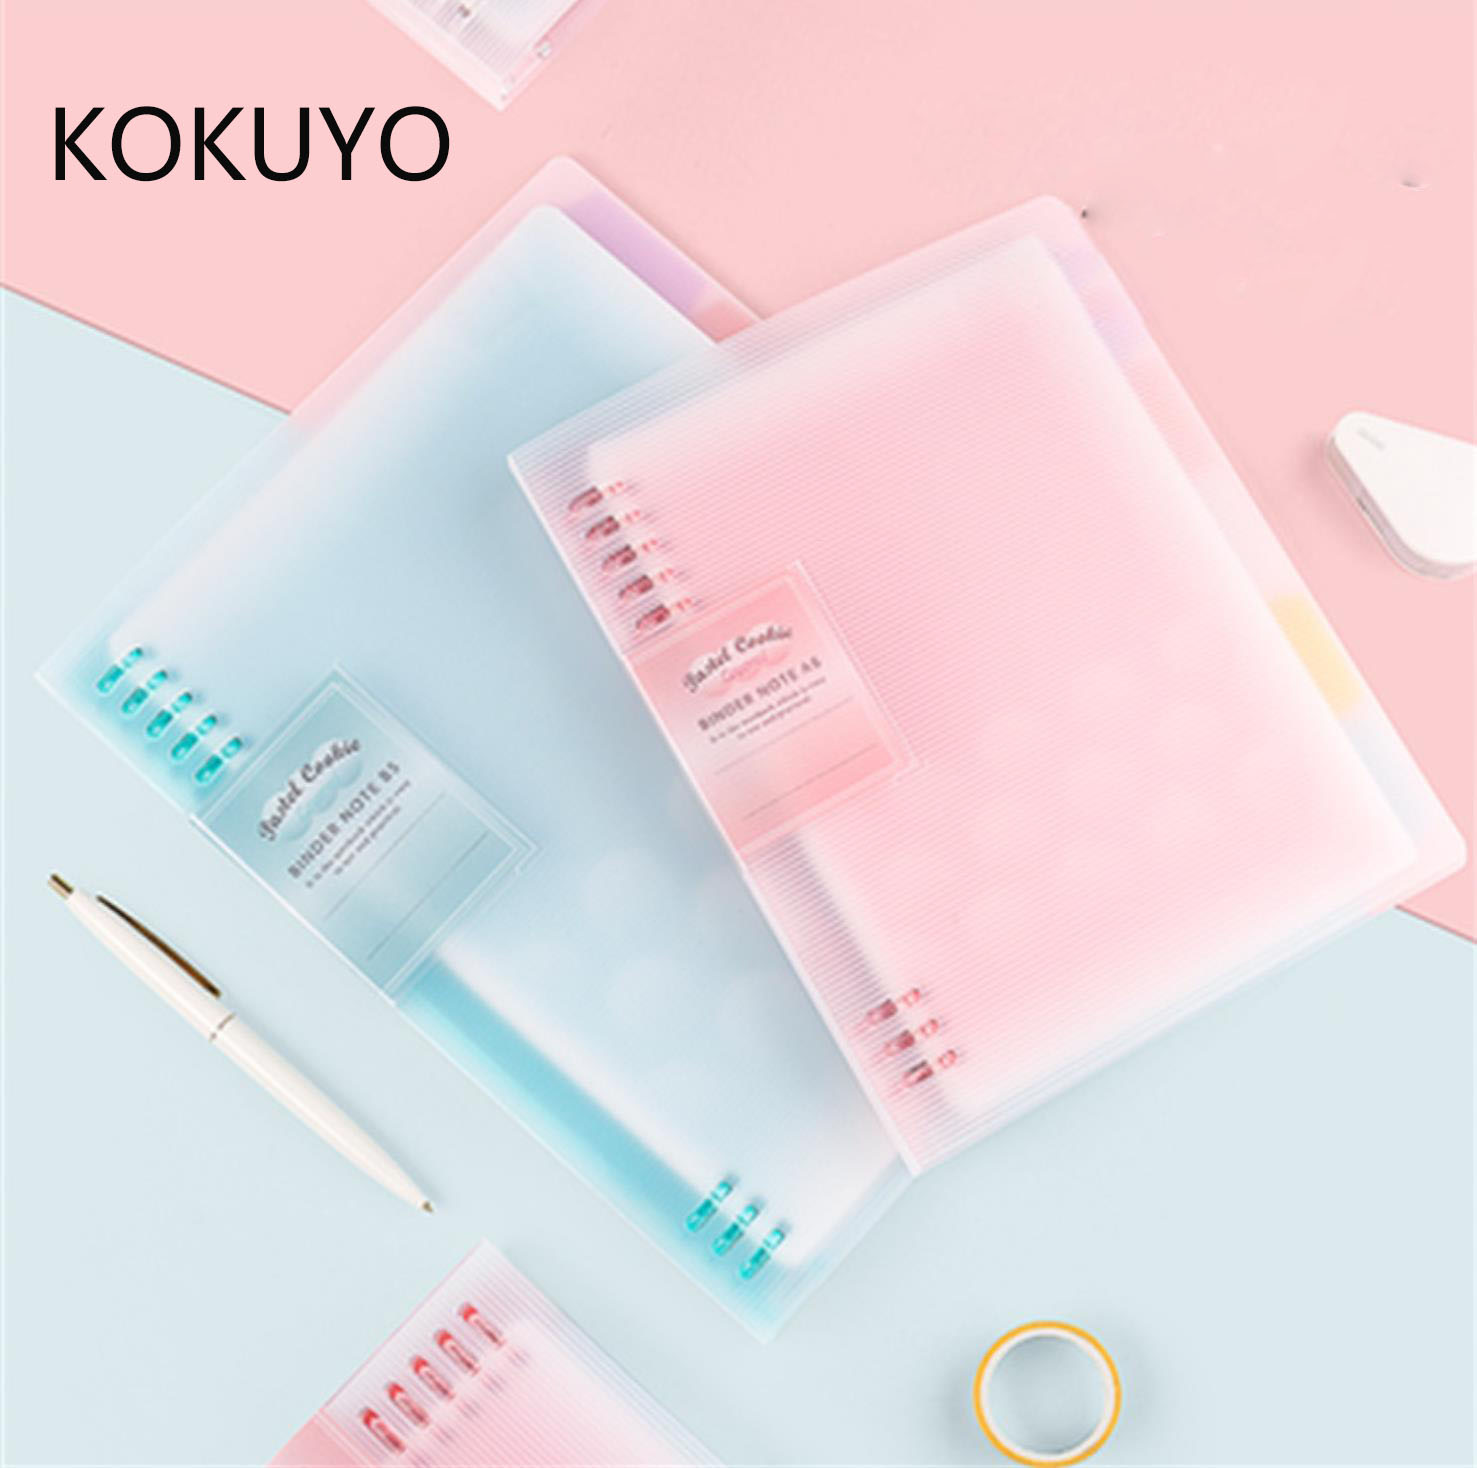 TUNACOCO KOKUYO Macaron Note Book Loose Leaf Inner A5 B5 A4 Ring Binder Notebook Diary Binder Office School Supplies Bz1710136